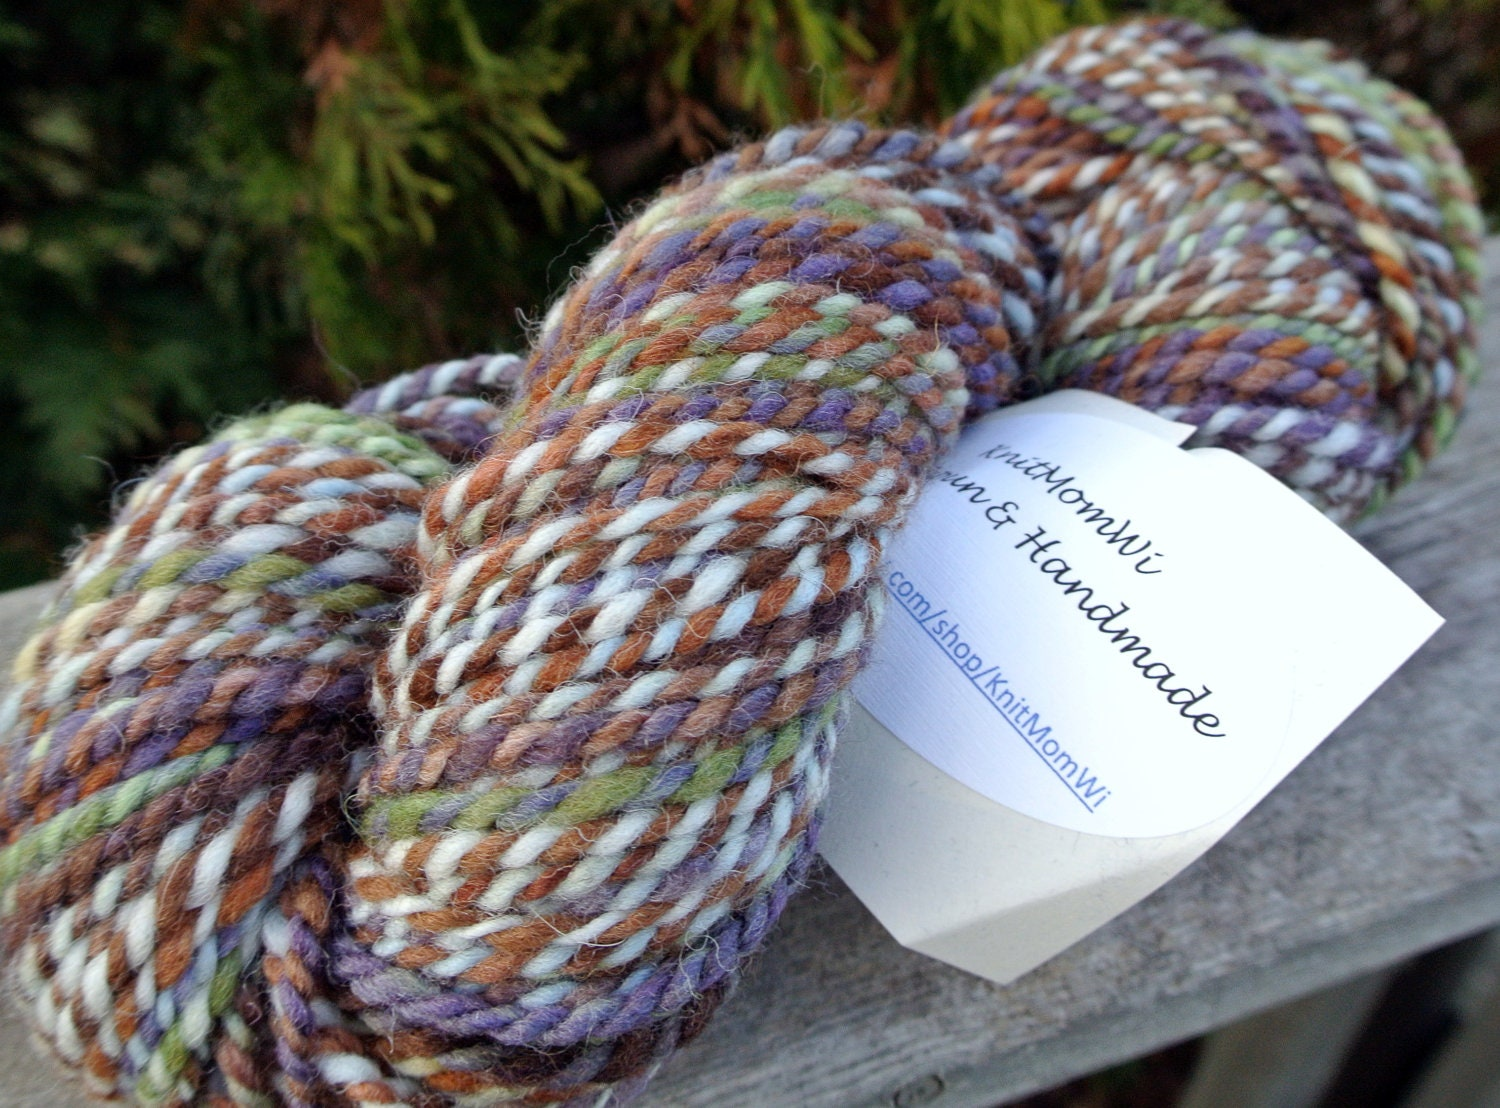 SALE Black Friday/Cyber Monday- Handspun Bulky Shetland Yarn: Pine and Mud Foes - KnitMomWi